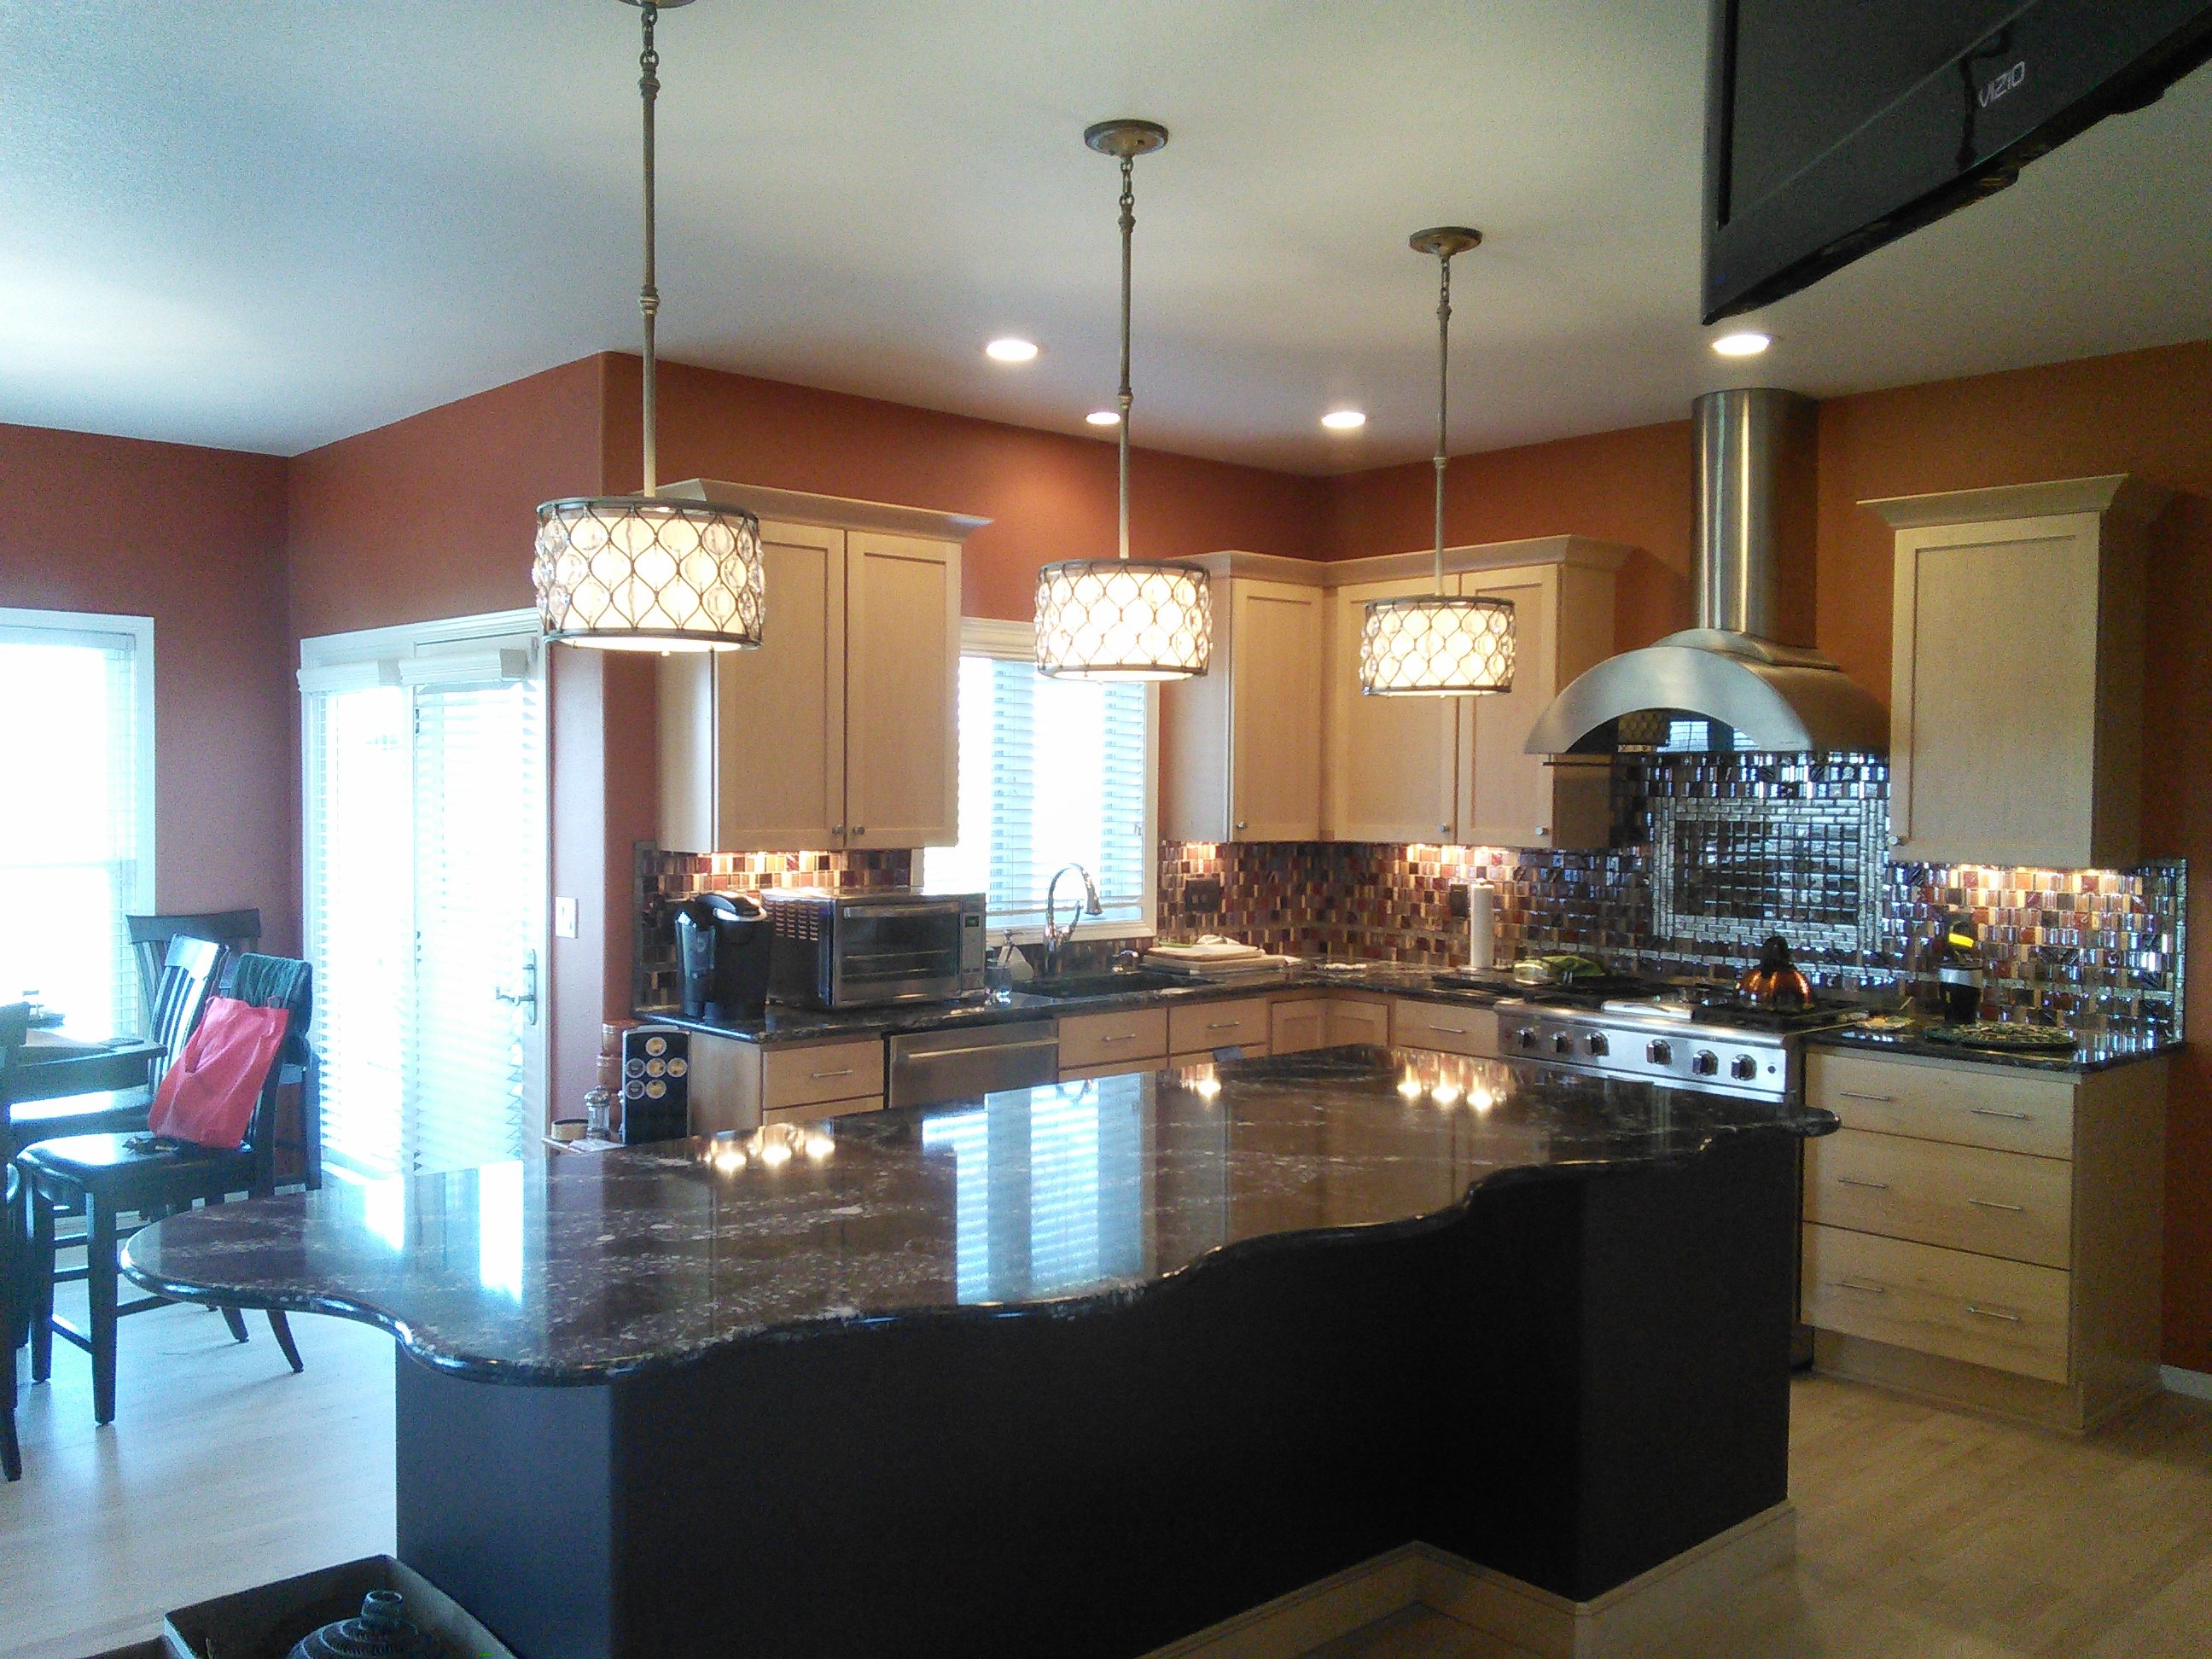 Iowa Kitchen remodeling contractor   Remodeled Kitchen 1   Home Town Restyling